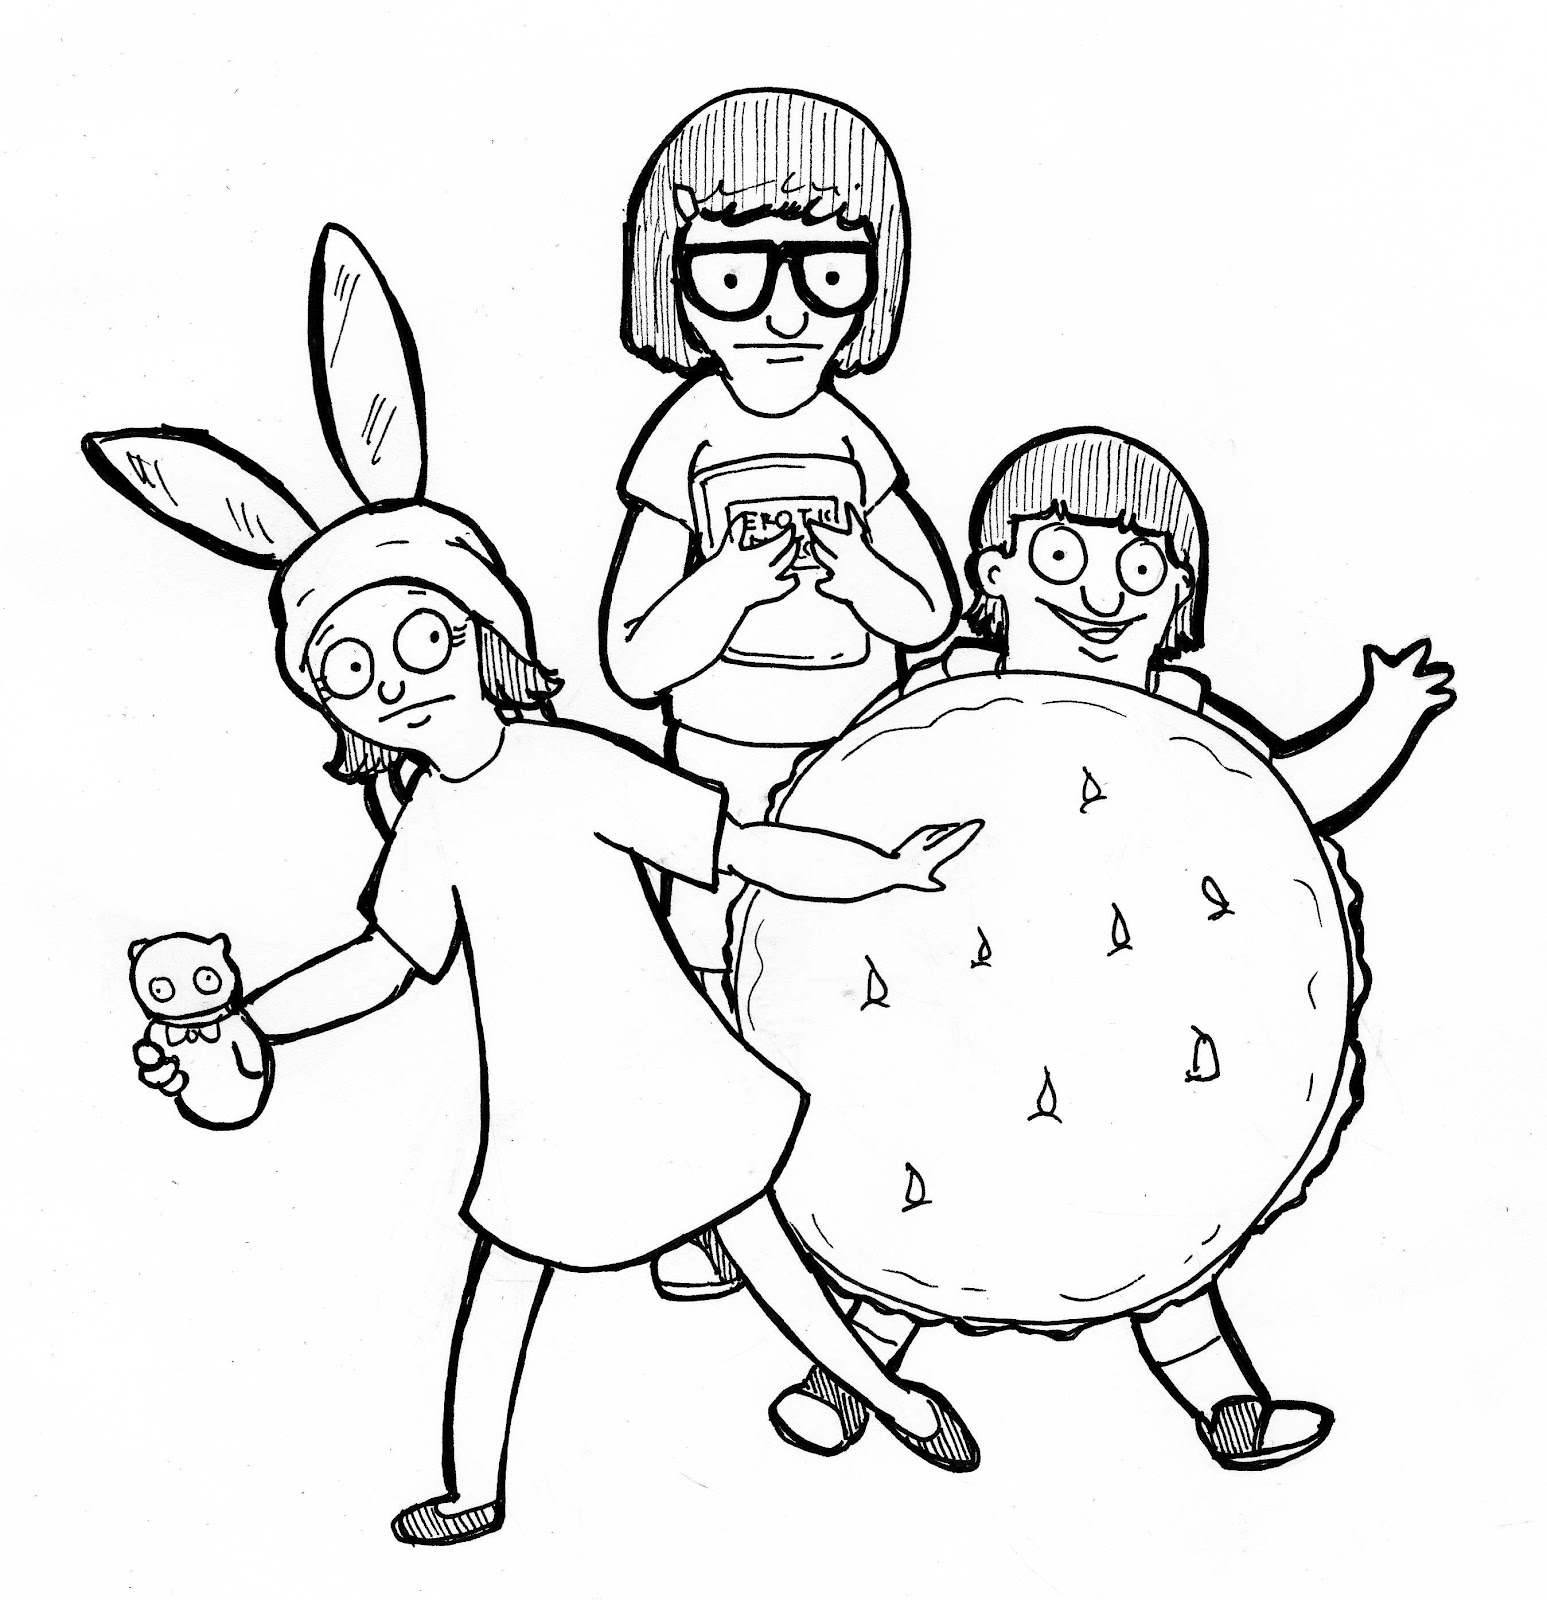 bobs burger coloring pages - photo#10